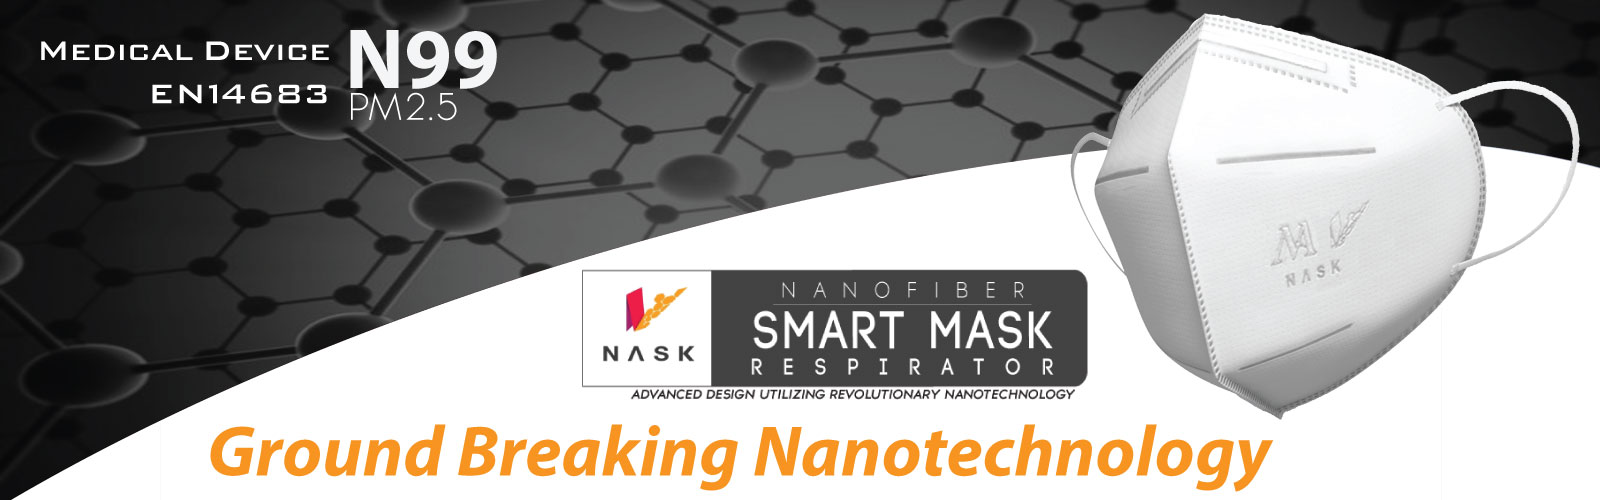 nanofiber-technology-nask-smart-mask